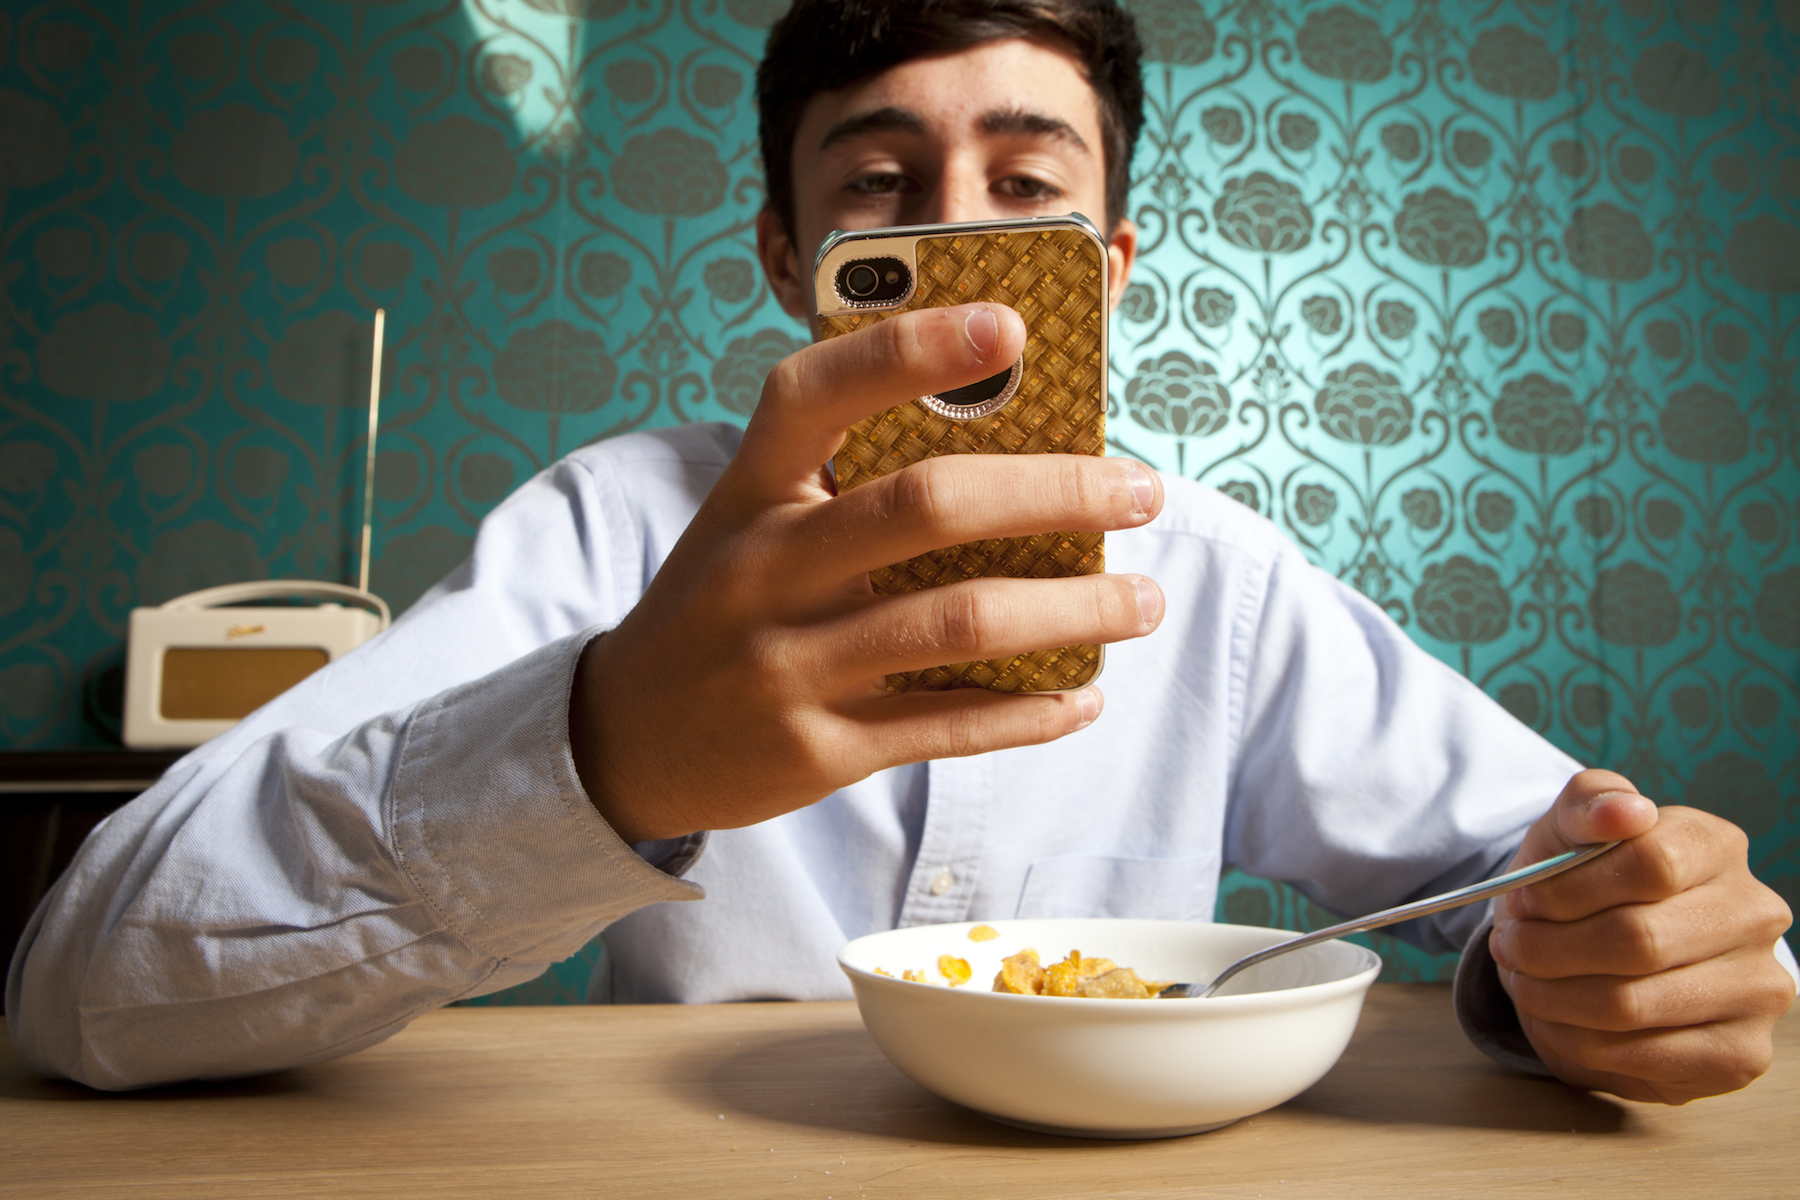 Teen boy with phone at breakfast